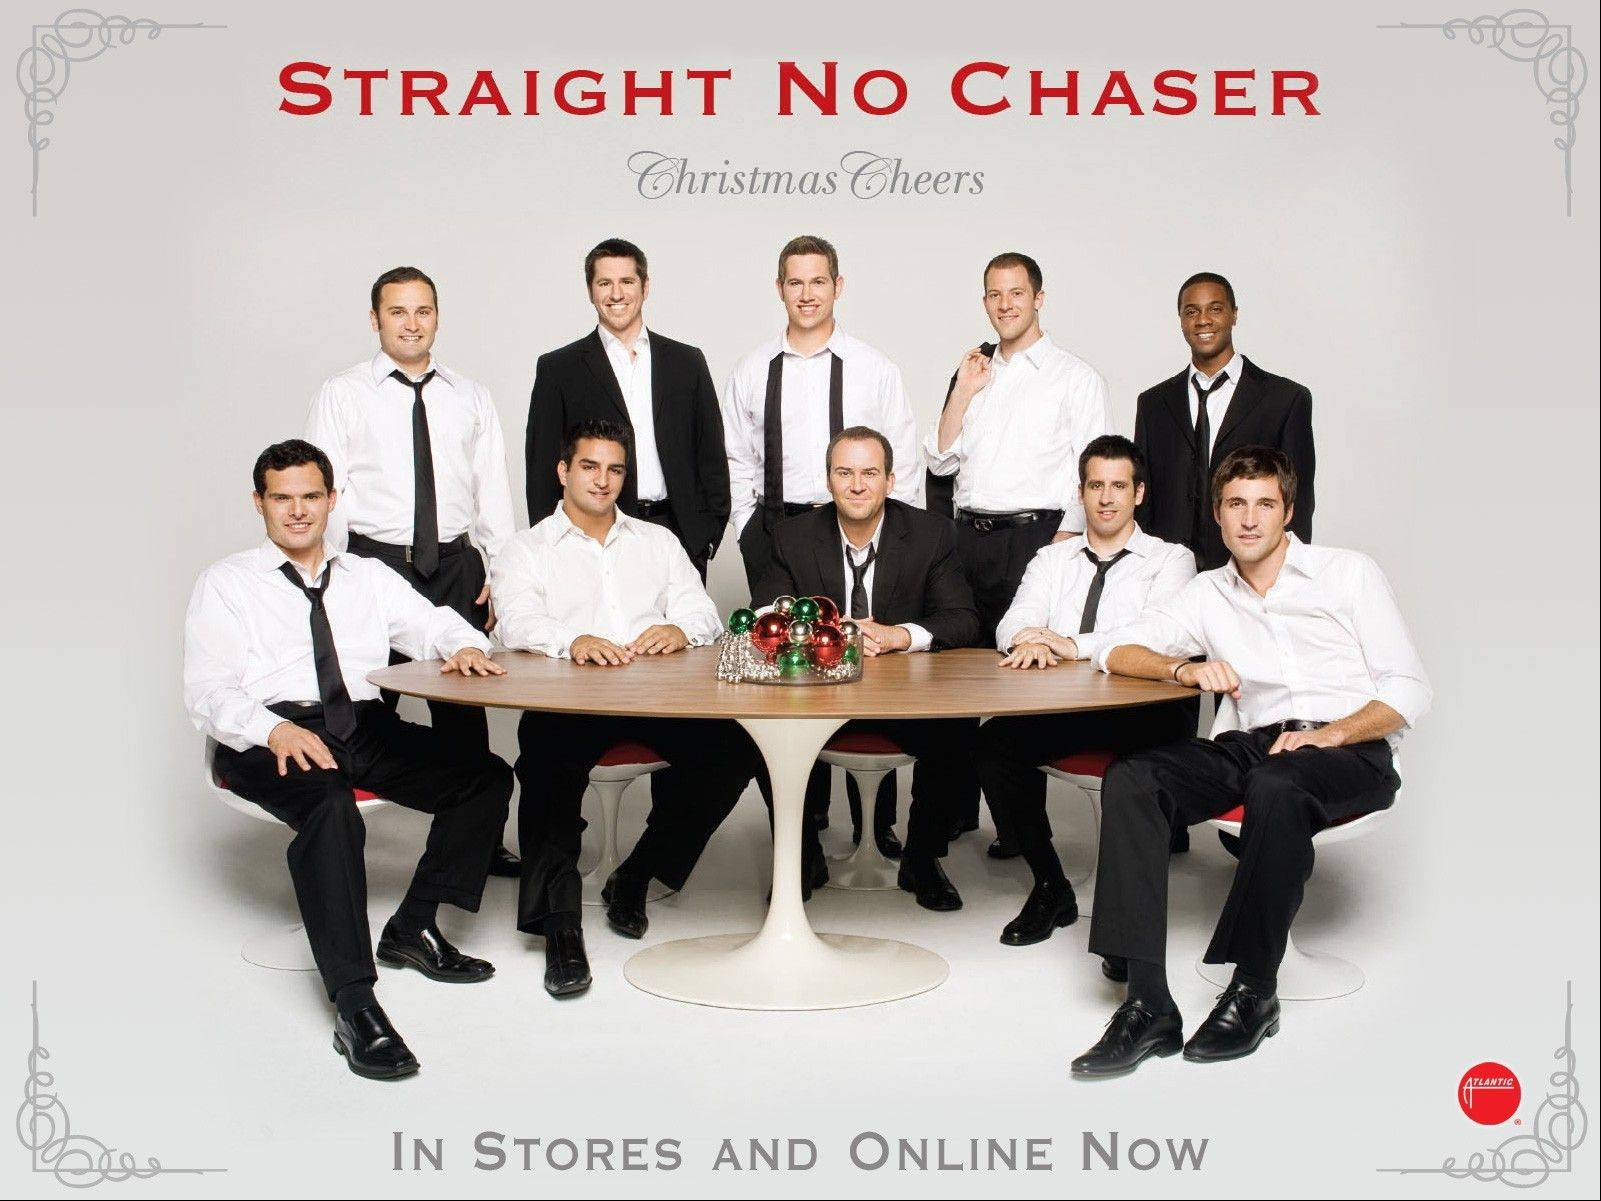 Straight No Chaser performs in concert at The Chicago Theatre in Chicago and at the Rosemont Theatre in Rosemont.